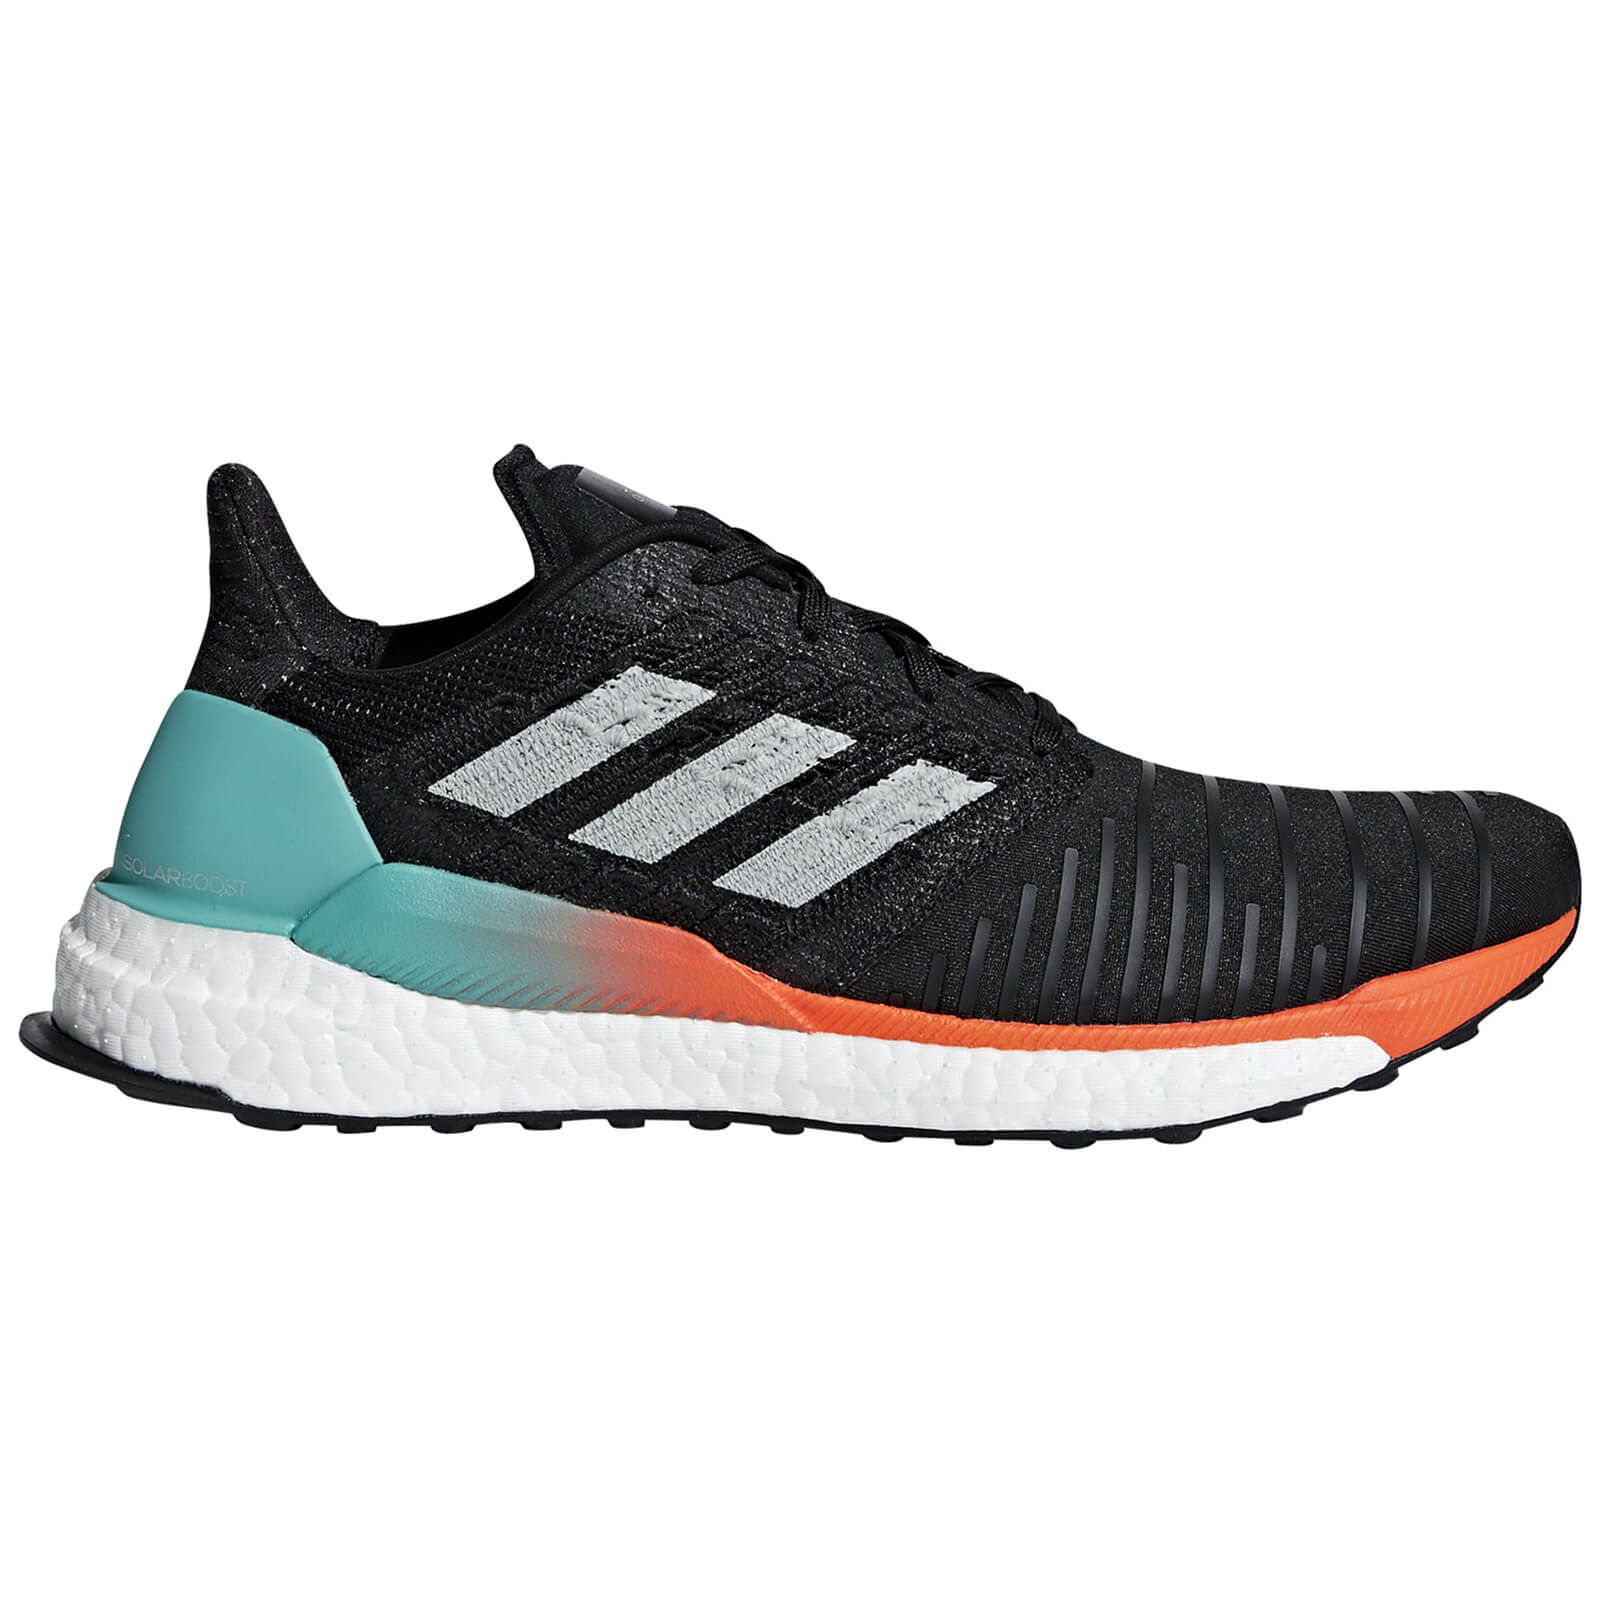 adidas Solar Boost Running Shoes - Black/Aqua